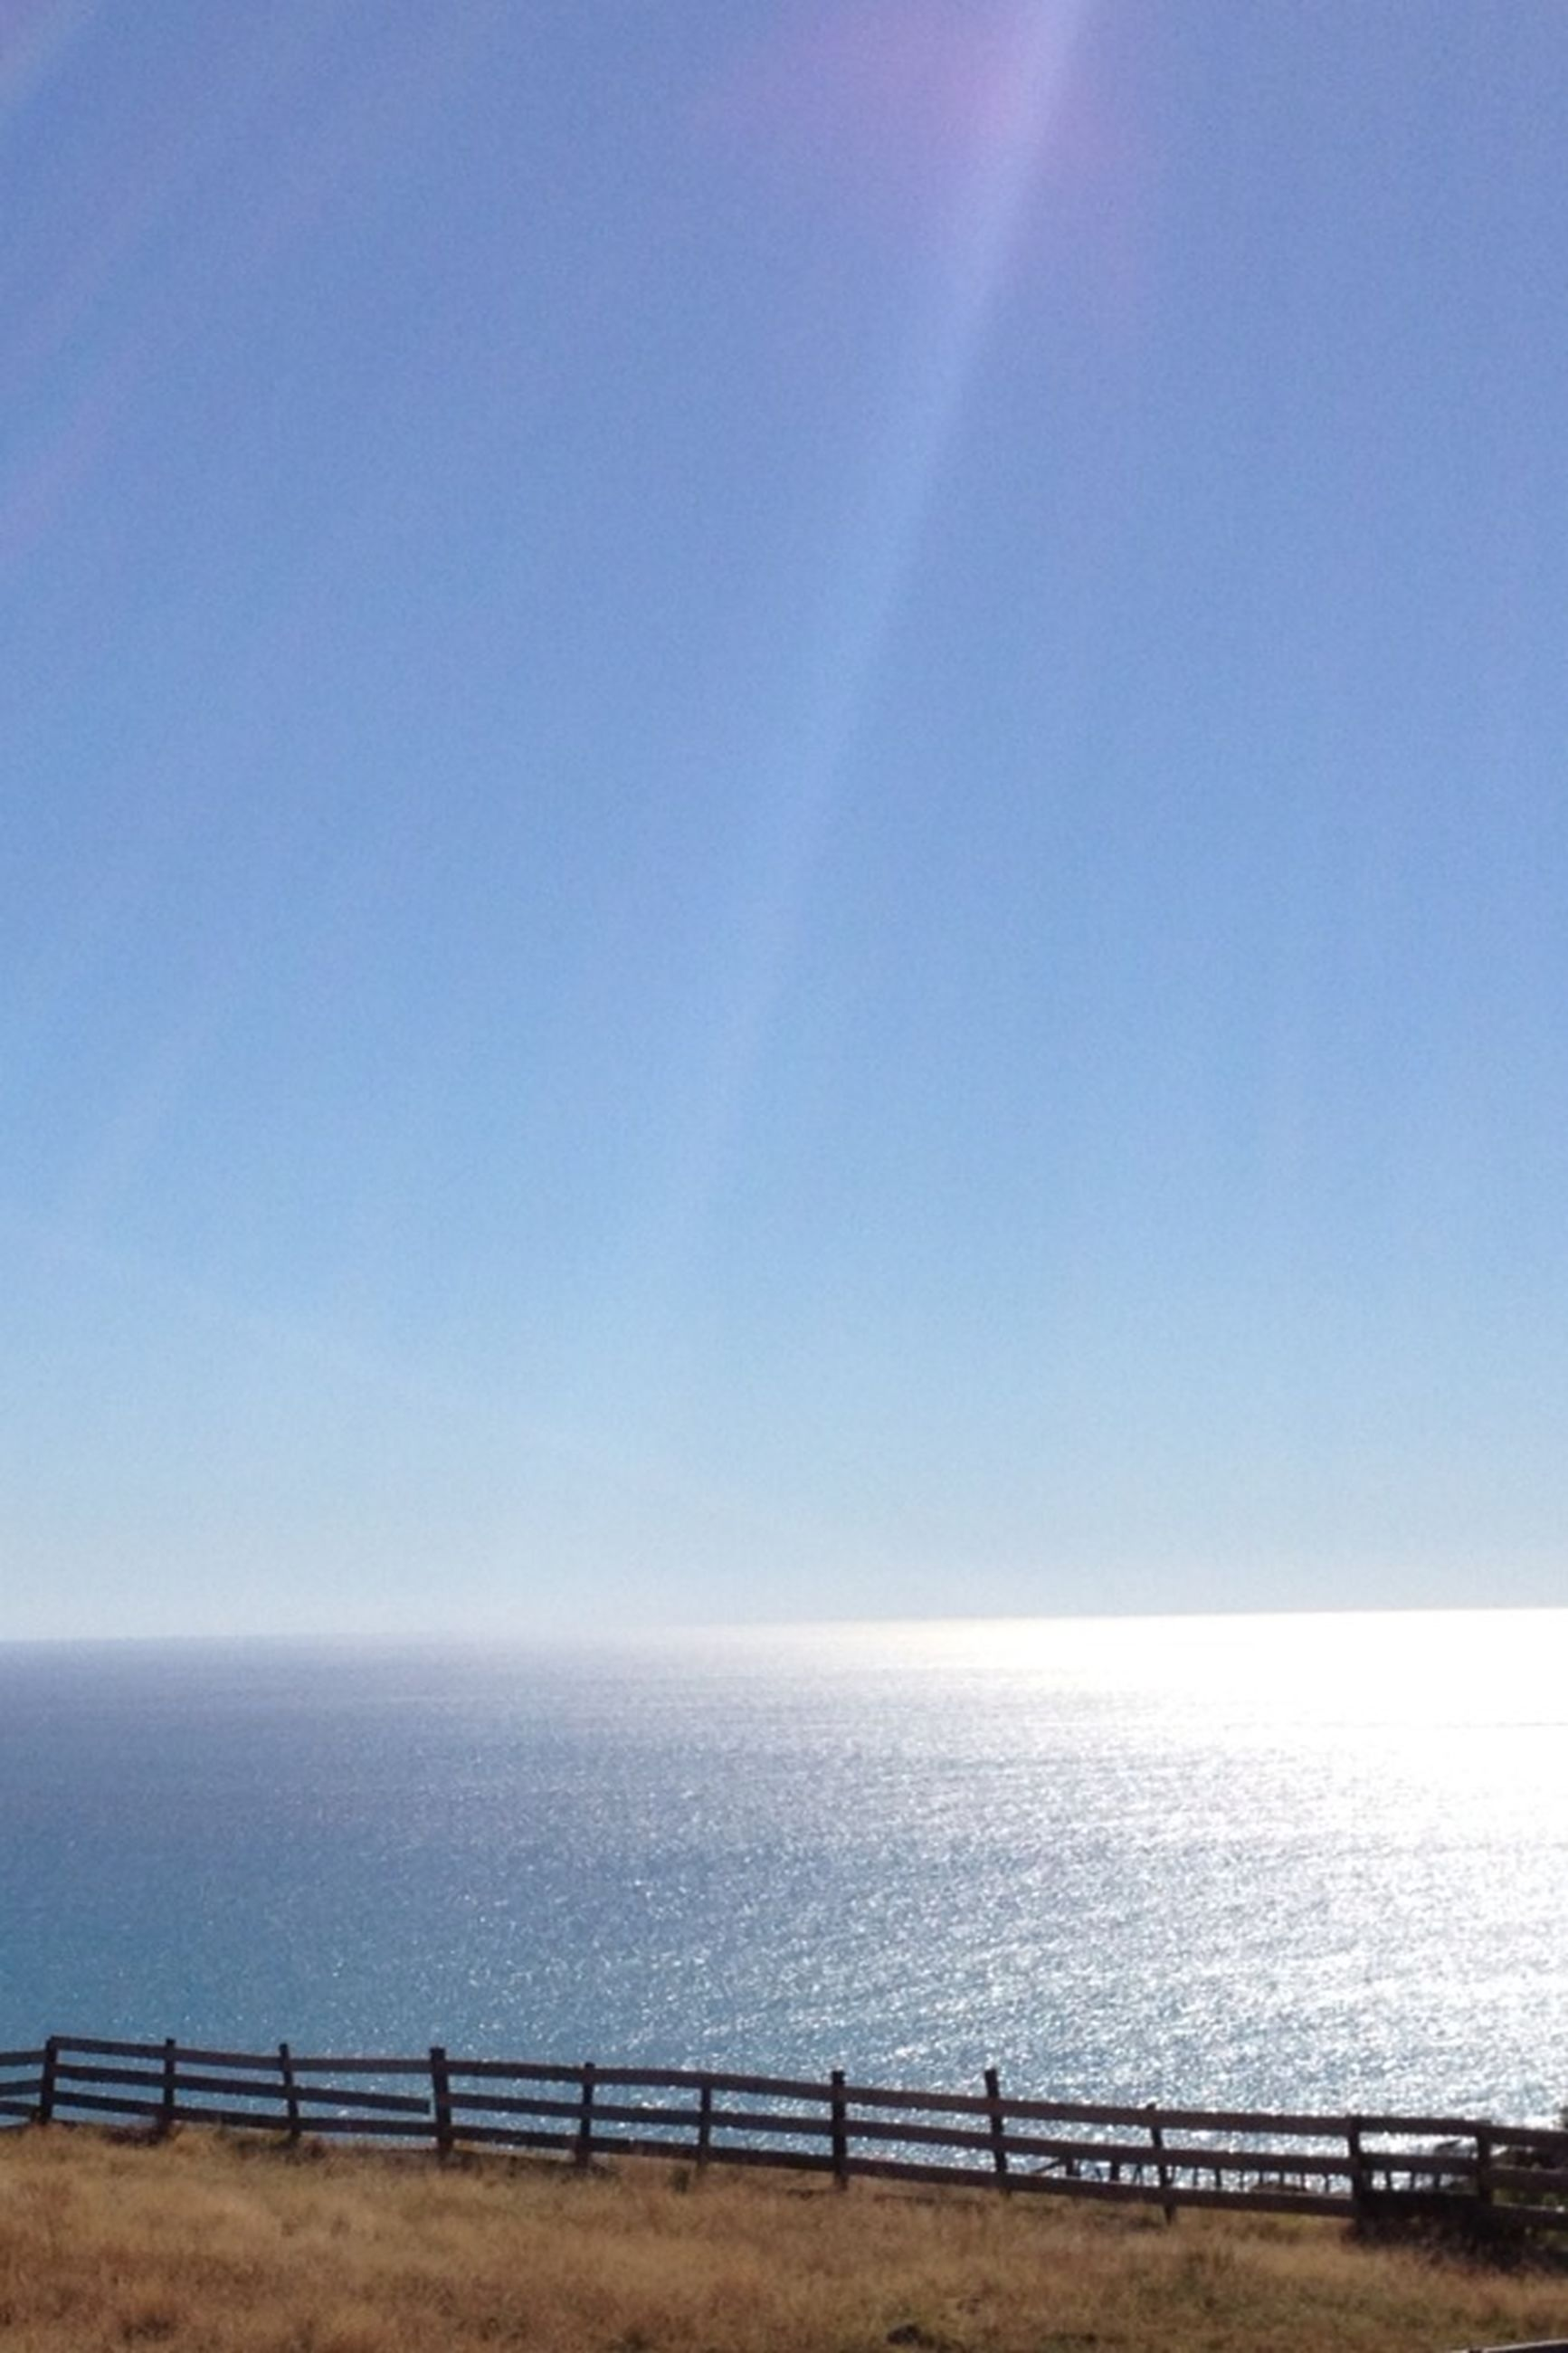 sea, horizon over water, water, scenics, tranquil scene, tranquility, beauty in nature, beach, blue, clear sky, railing, copy space, nature, idyllic, shore, sky, sunlight, outdoors, calm, remote